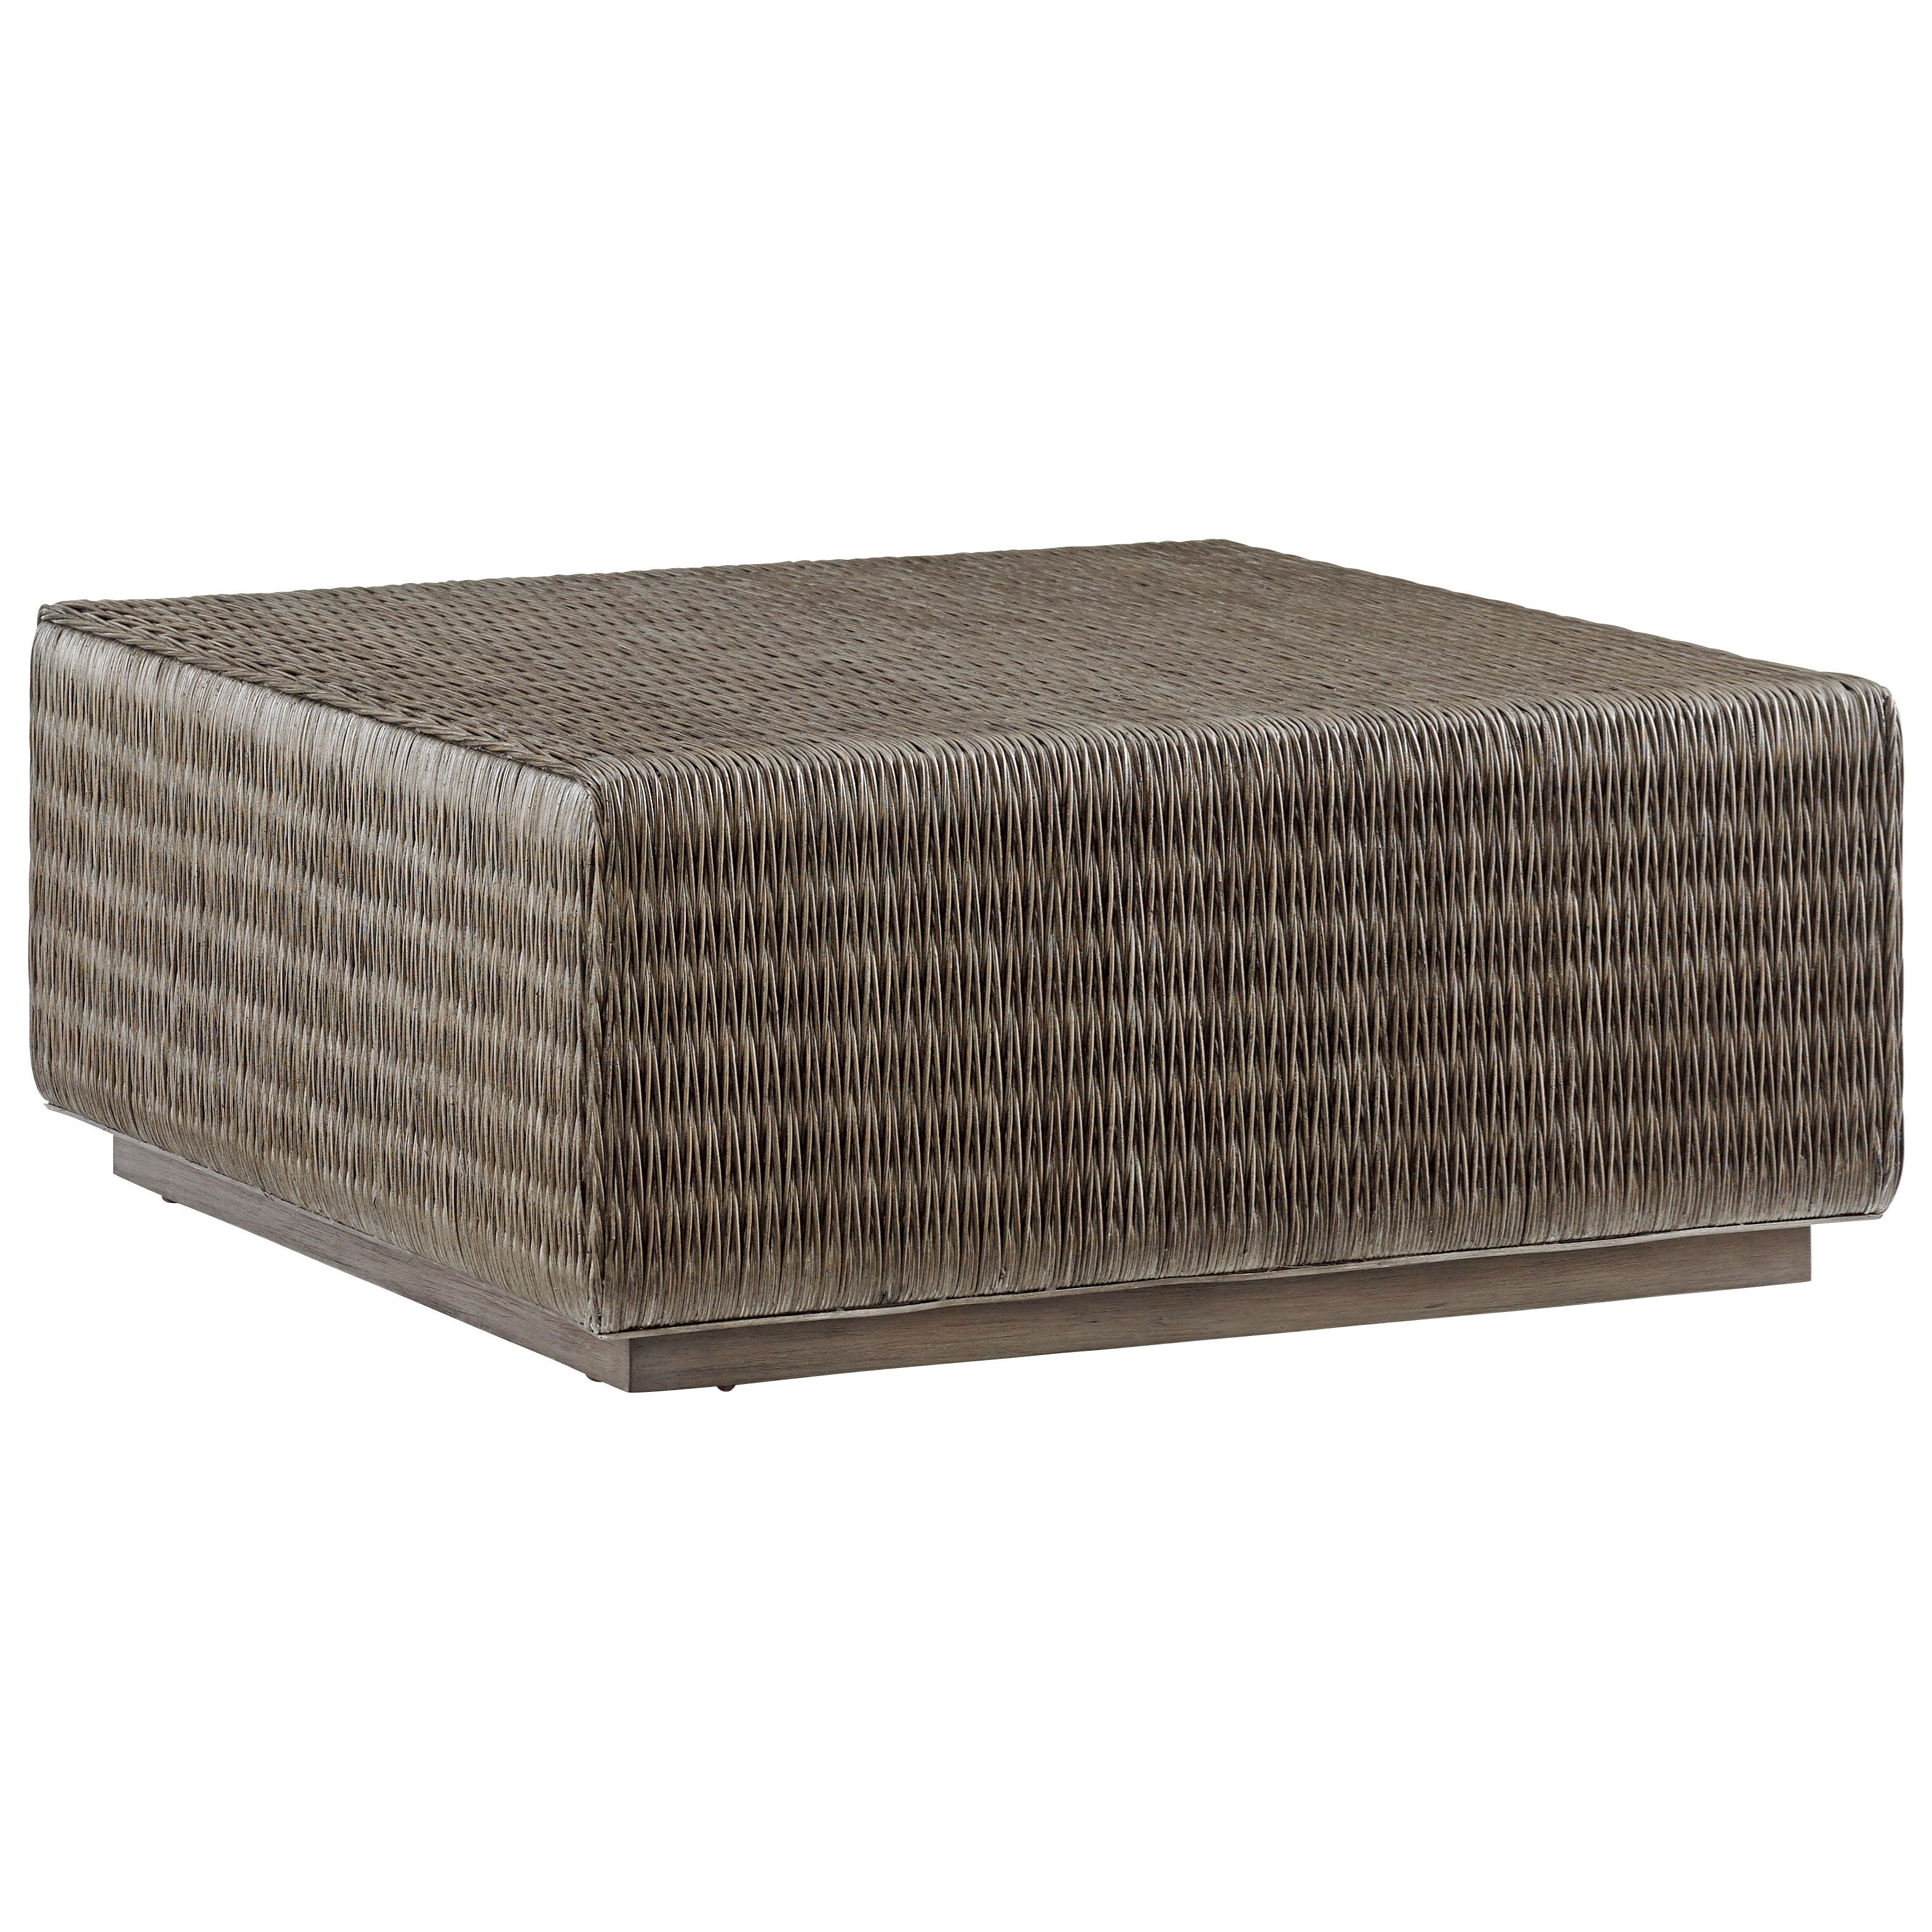 Cypress Point Seawatch Woven Cocktail Table by Tommy Bahama Home at Baer's Furniture